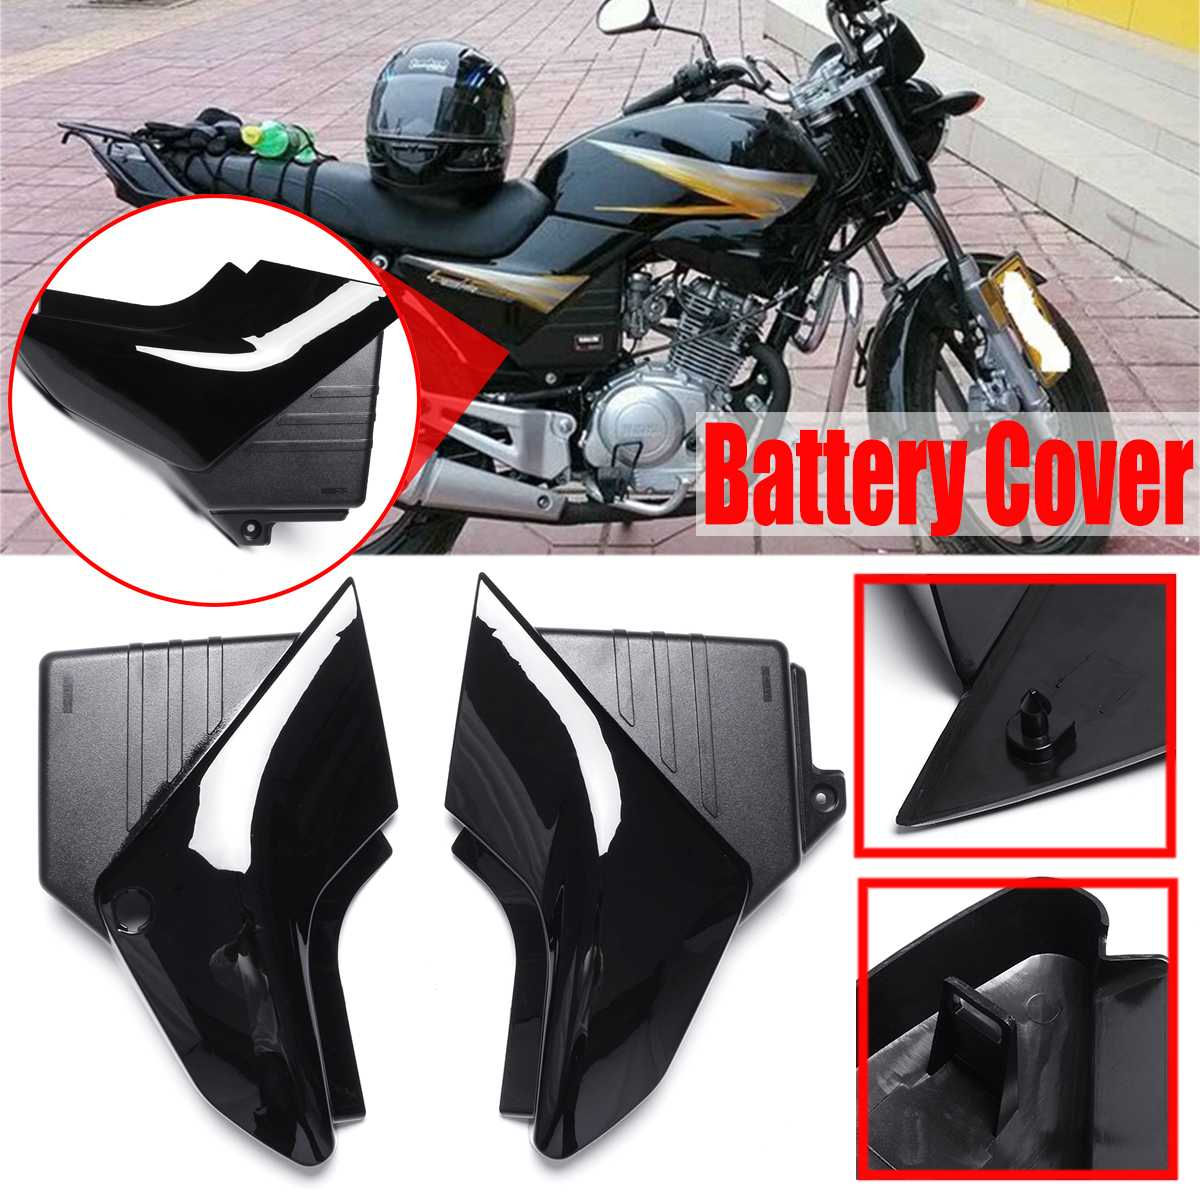 BMW R100 Battery Cover Side Panel Stickers Decals Black